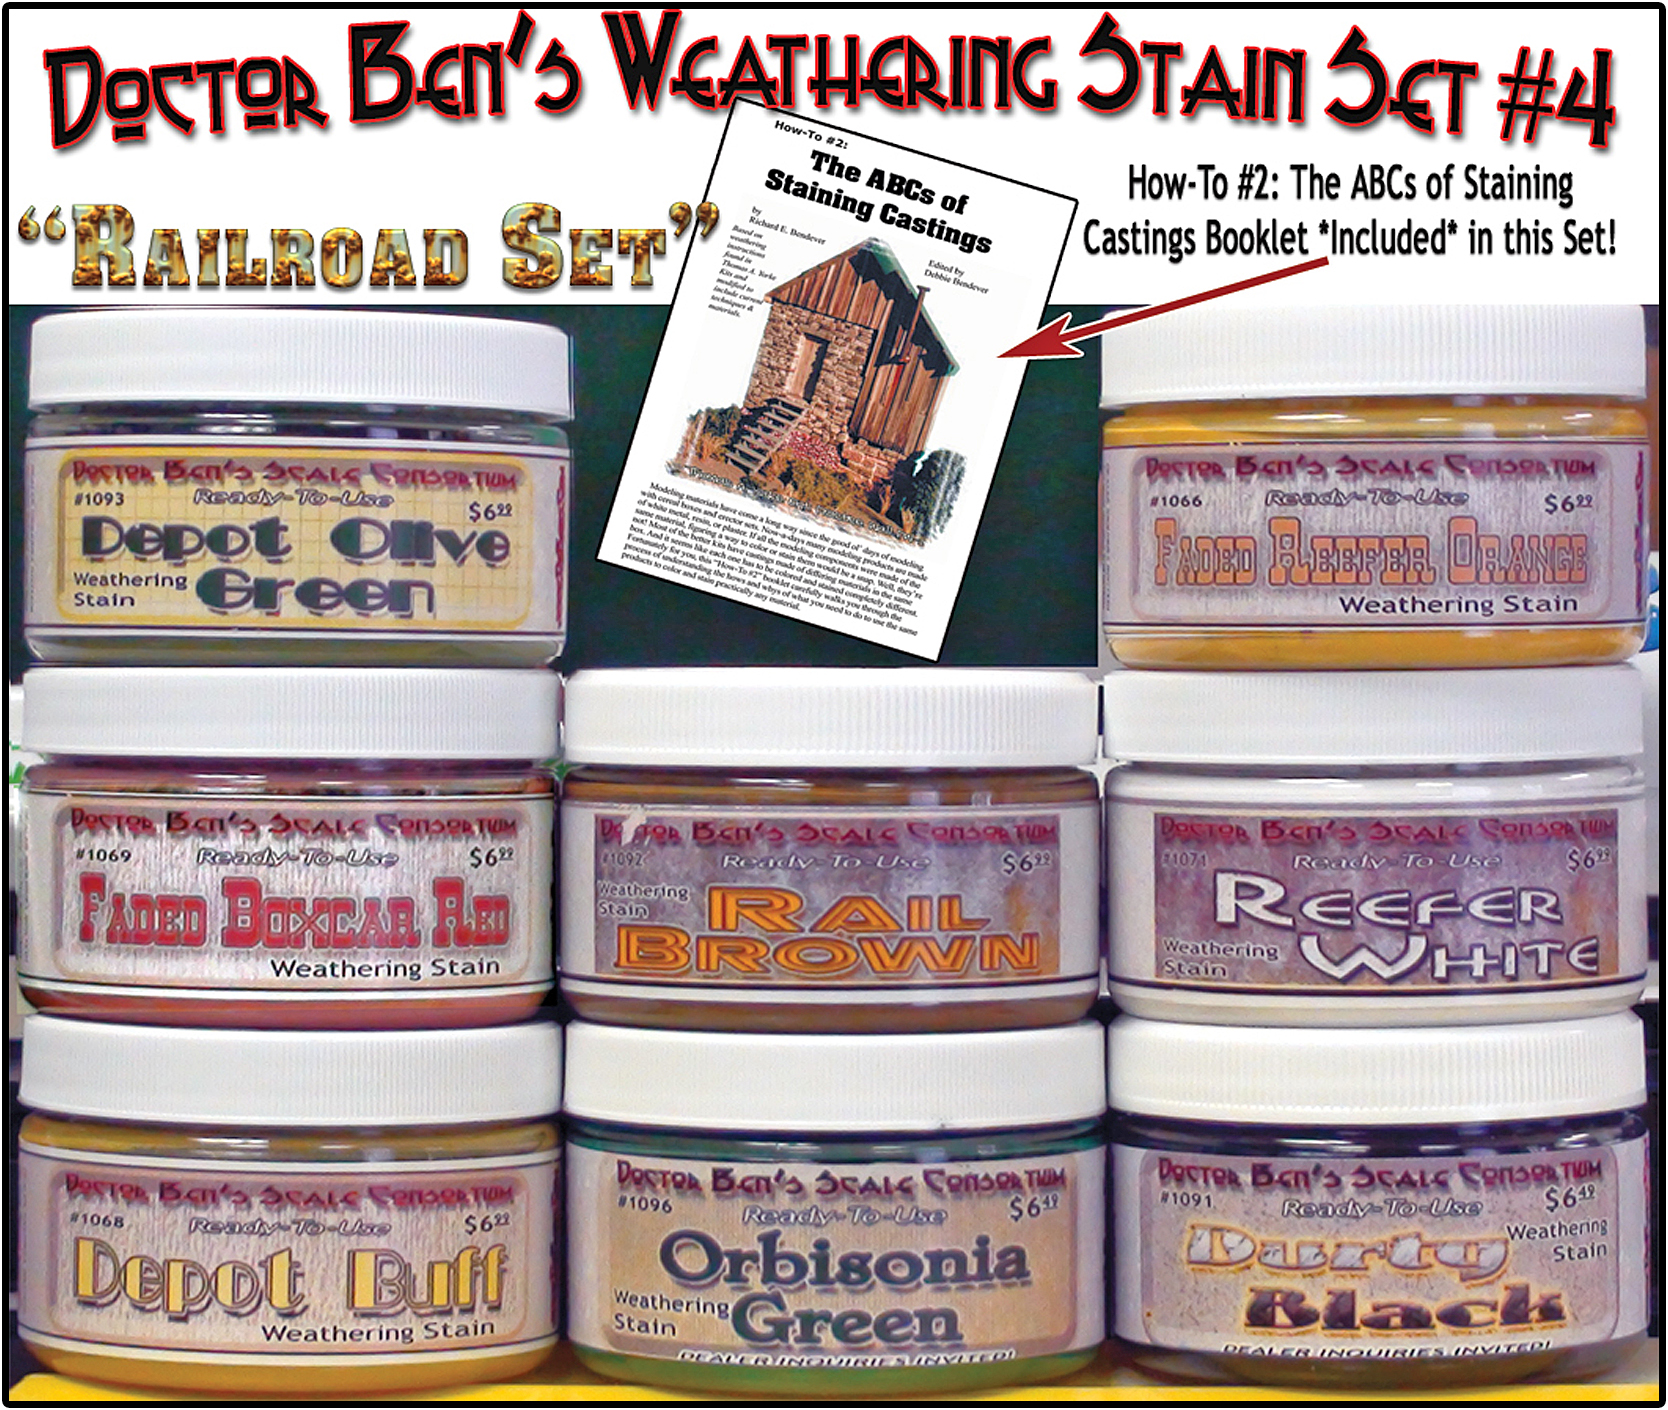 Weathering Stain Set #4 & Booklet #2 & #5533 Junk Pile-Doctor Ben's